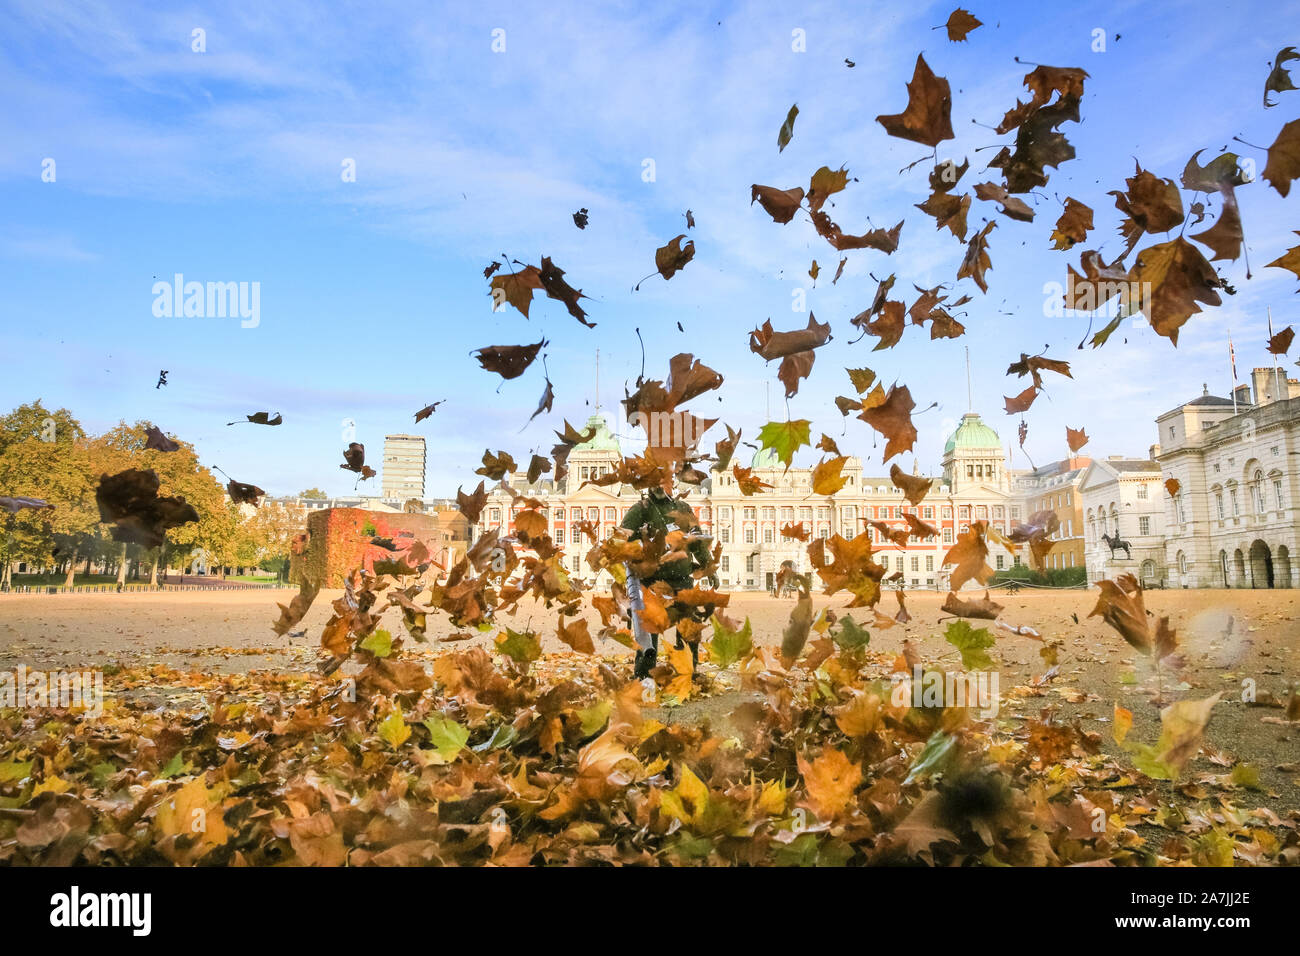 London, UK, 03rd Nov 2019. Westminster leaf blowing contractors are out on Horse Guards Parade in beautiful sunshine, clearing the large open space often used for parades of autumnal leaves and debris. Credit: Imageplotter/Alamy Live News Stock Photo